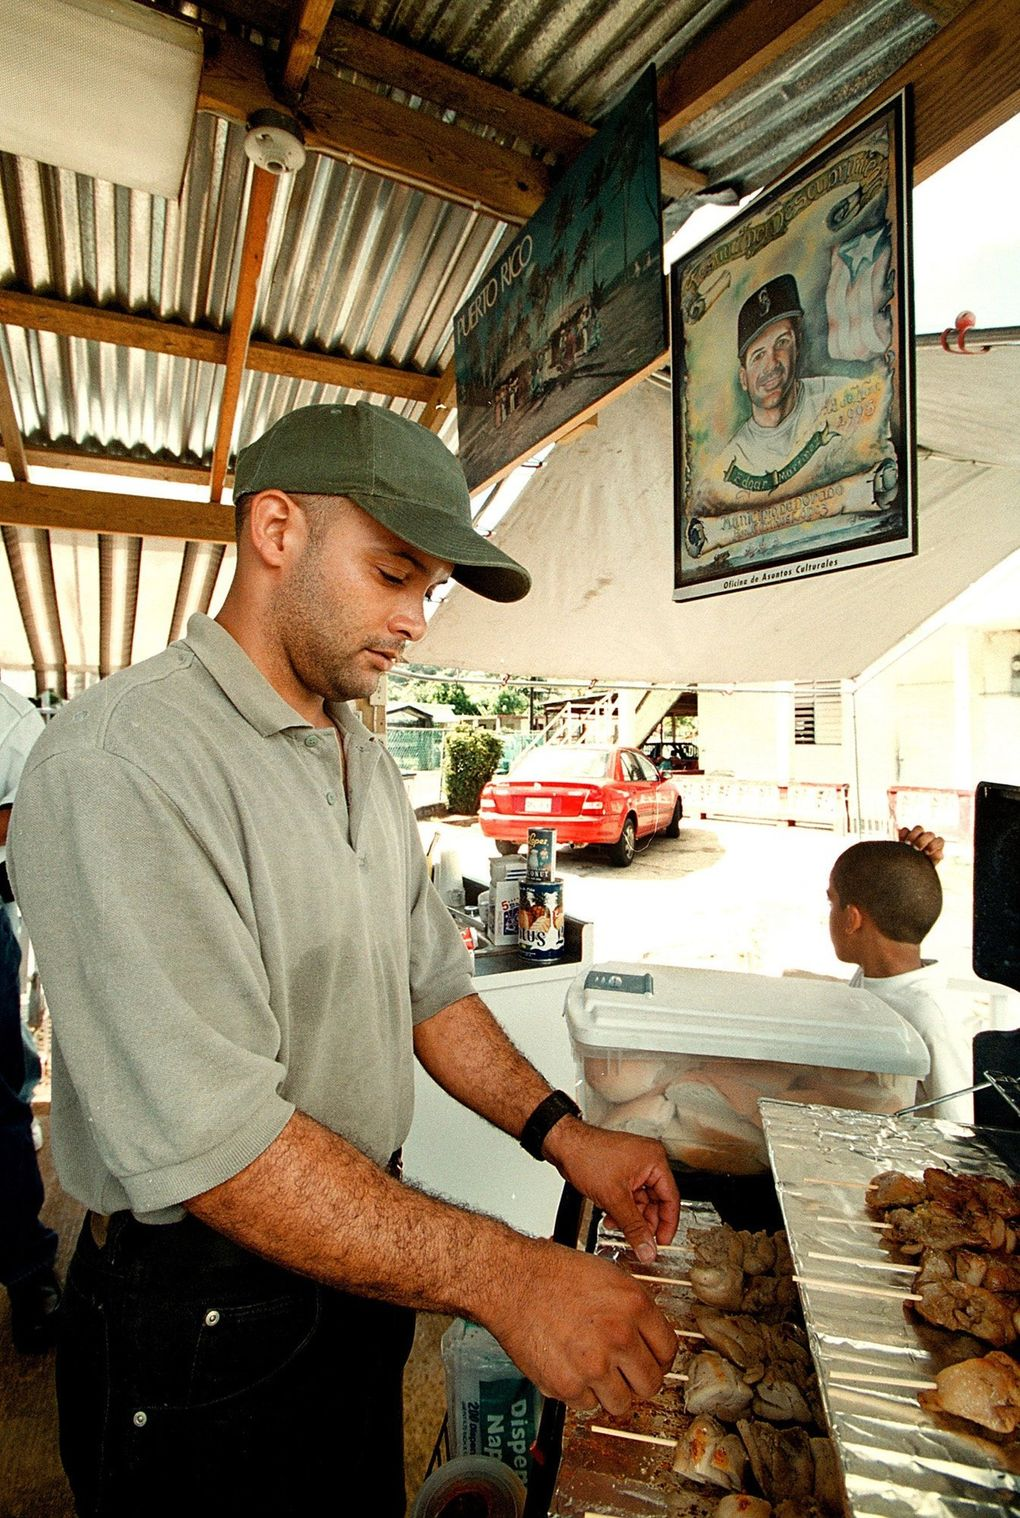 """Jose Santana prepares the traditional Puerto Rican """"Pinchos"""" made of pork and chicken. In the background a painting of Edgar Martinez has a special place in his shop. (Juan Luis Martinez / Special for The Seattle Times)"""